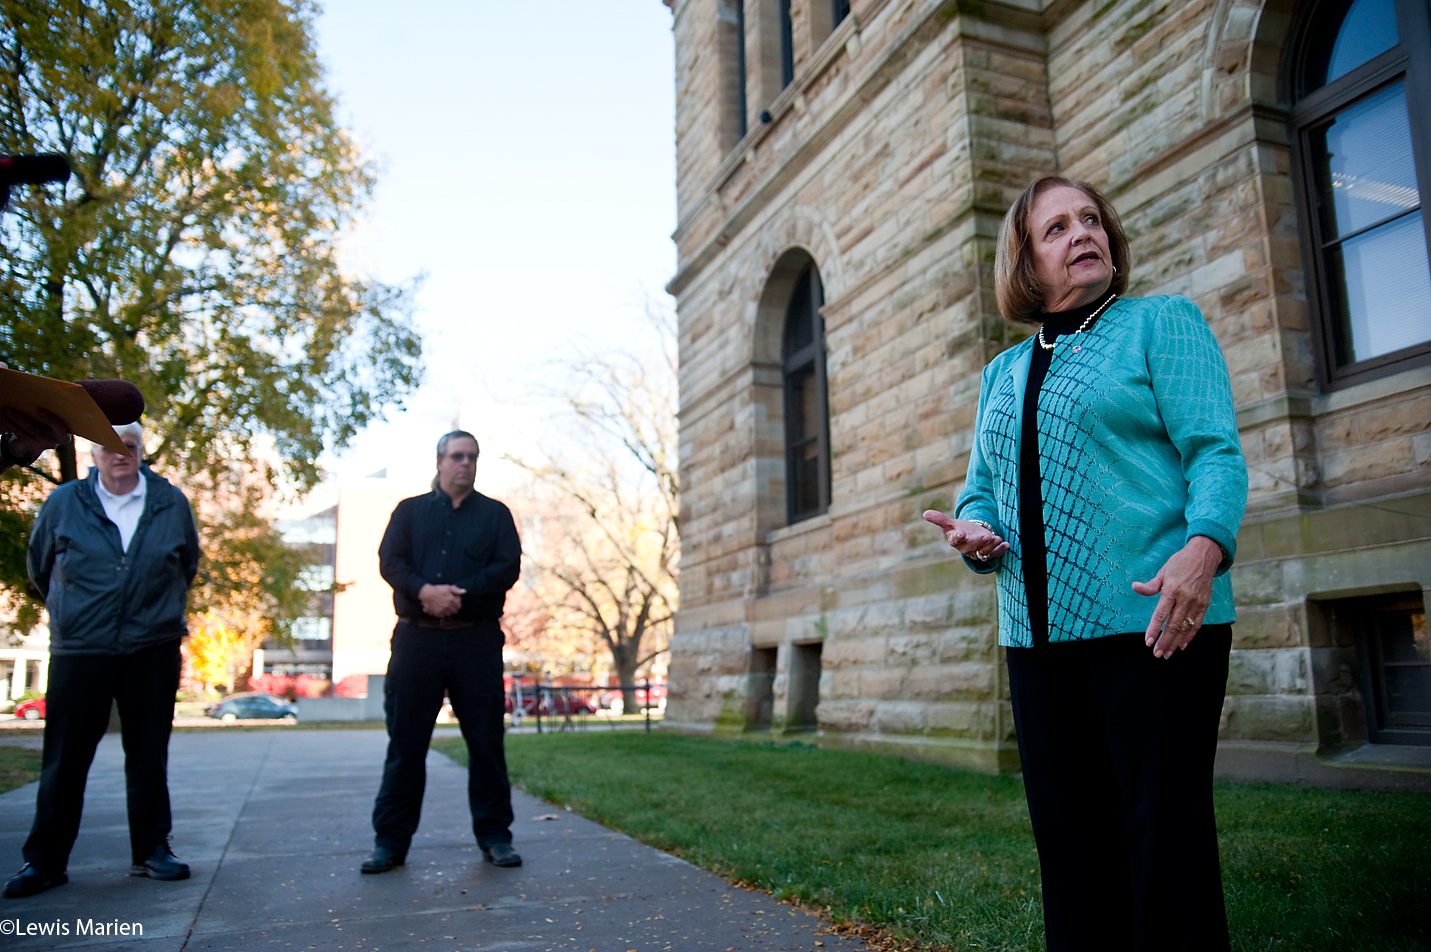 Rep. Norine Hammond, R-Macomb, announces her re-election campaign to local media and supporters Nov. 4 at the Knox County Courthouse in Galesburg, Ill.